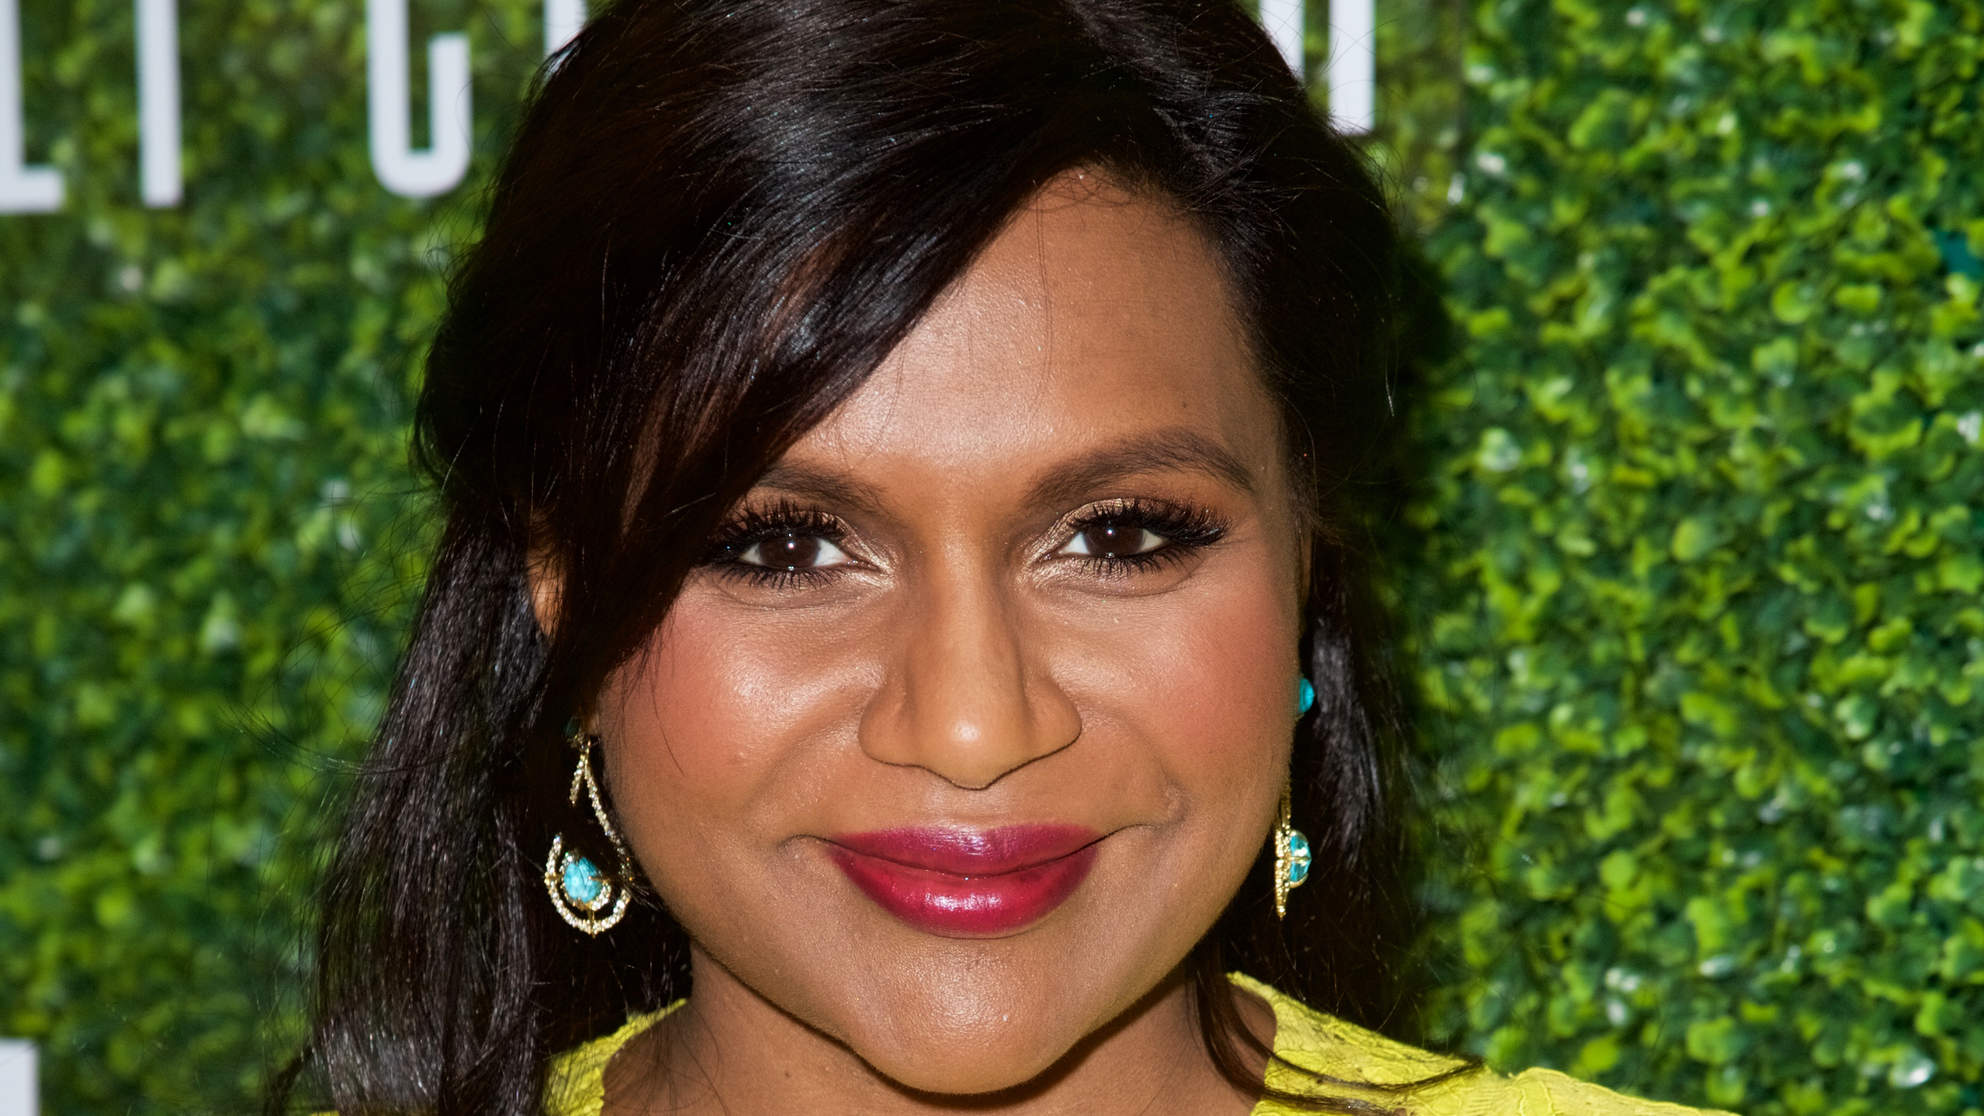 Mindy Kaling Shares Bikini Photos to Promote Body Positivity: 'You Don't Have to Be a Size 0'